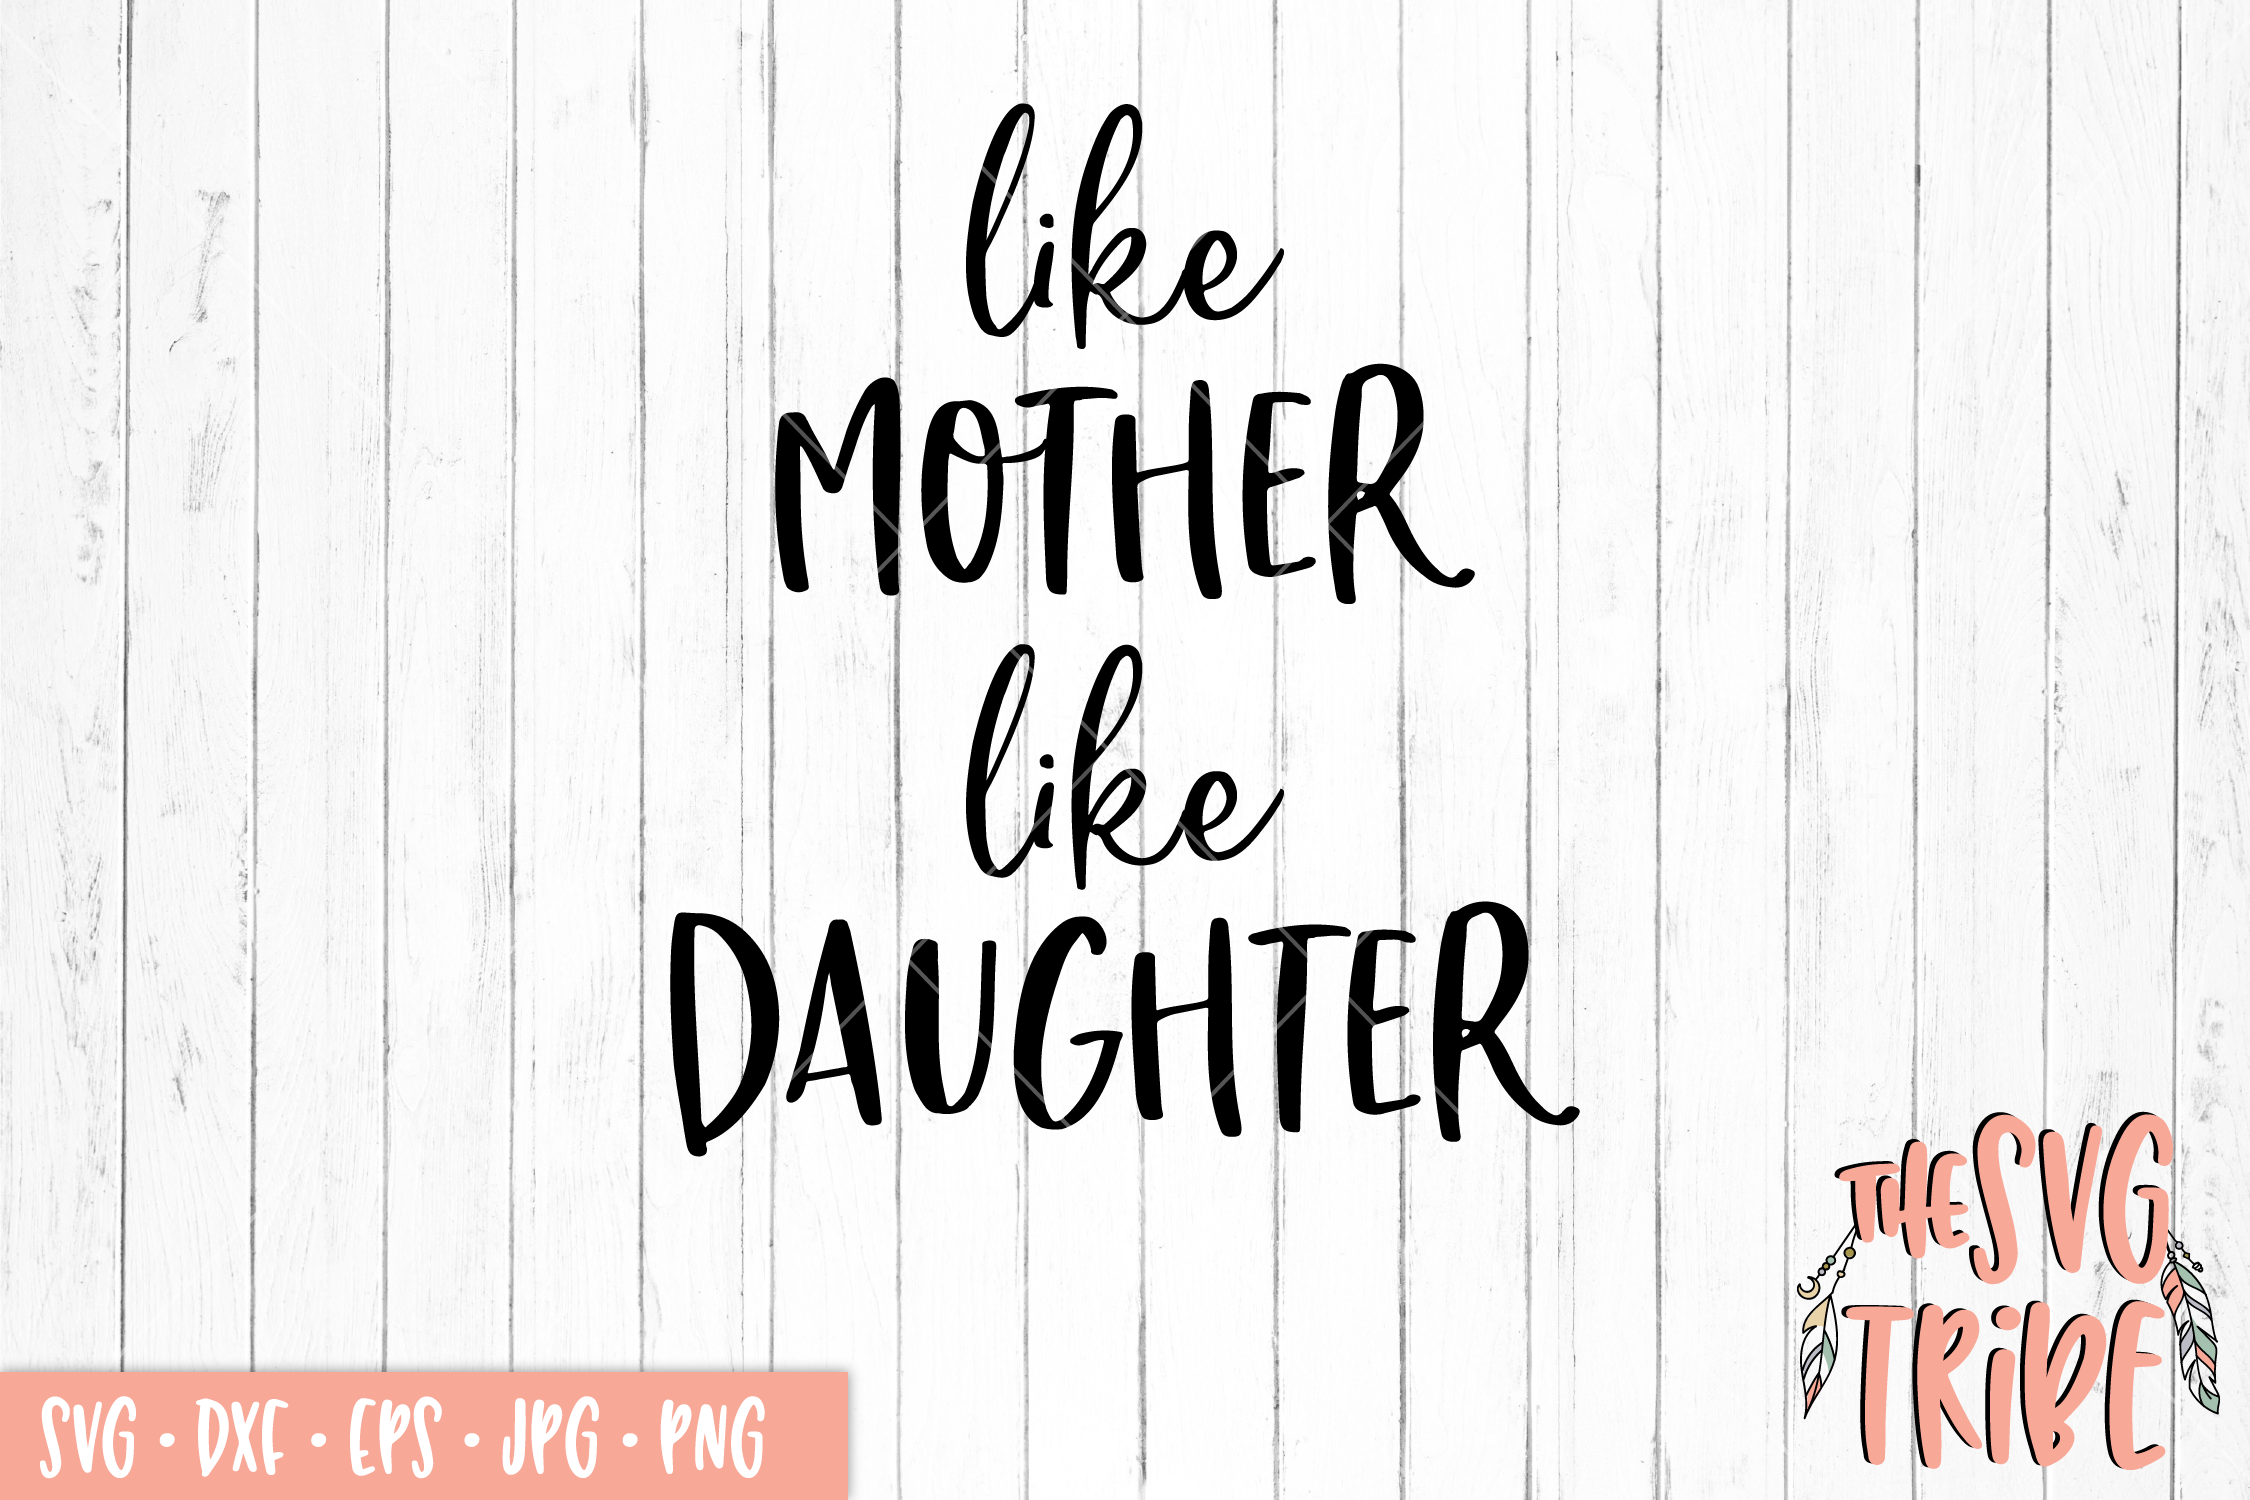 Like Mother Like Daughter SVG DXF PNG EPS JPG Cutting Files example image 1